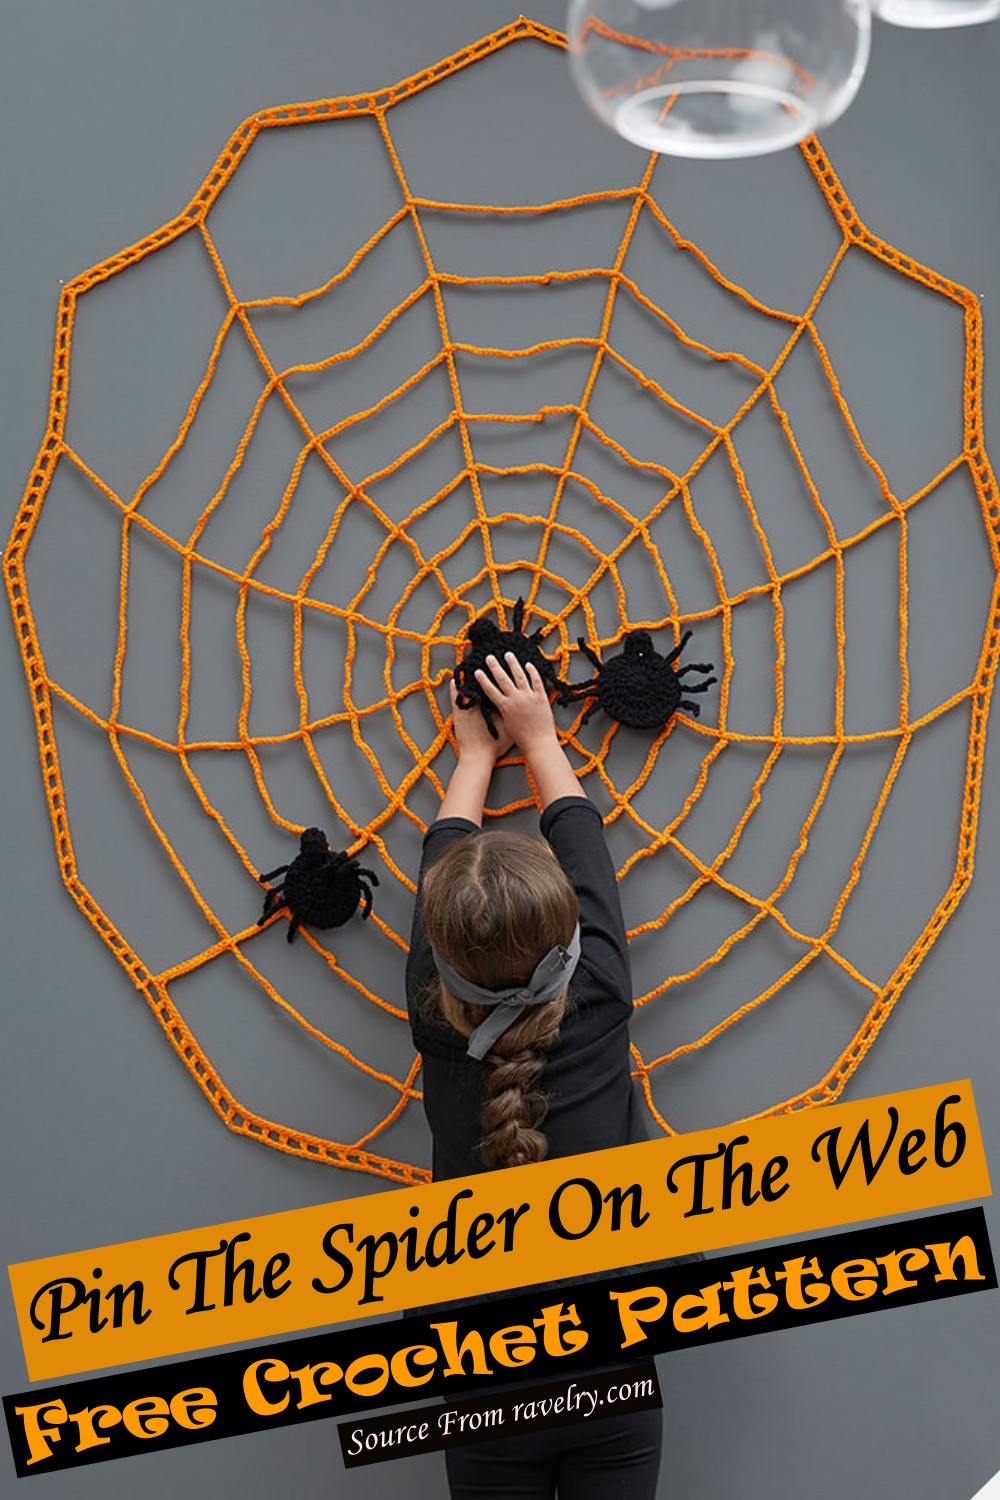 Free Crochet Pin The Spider On The Web Pattern